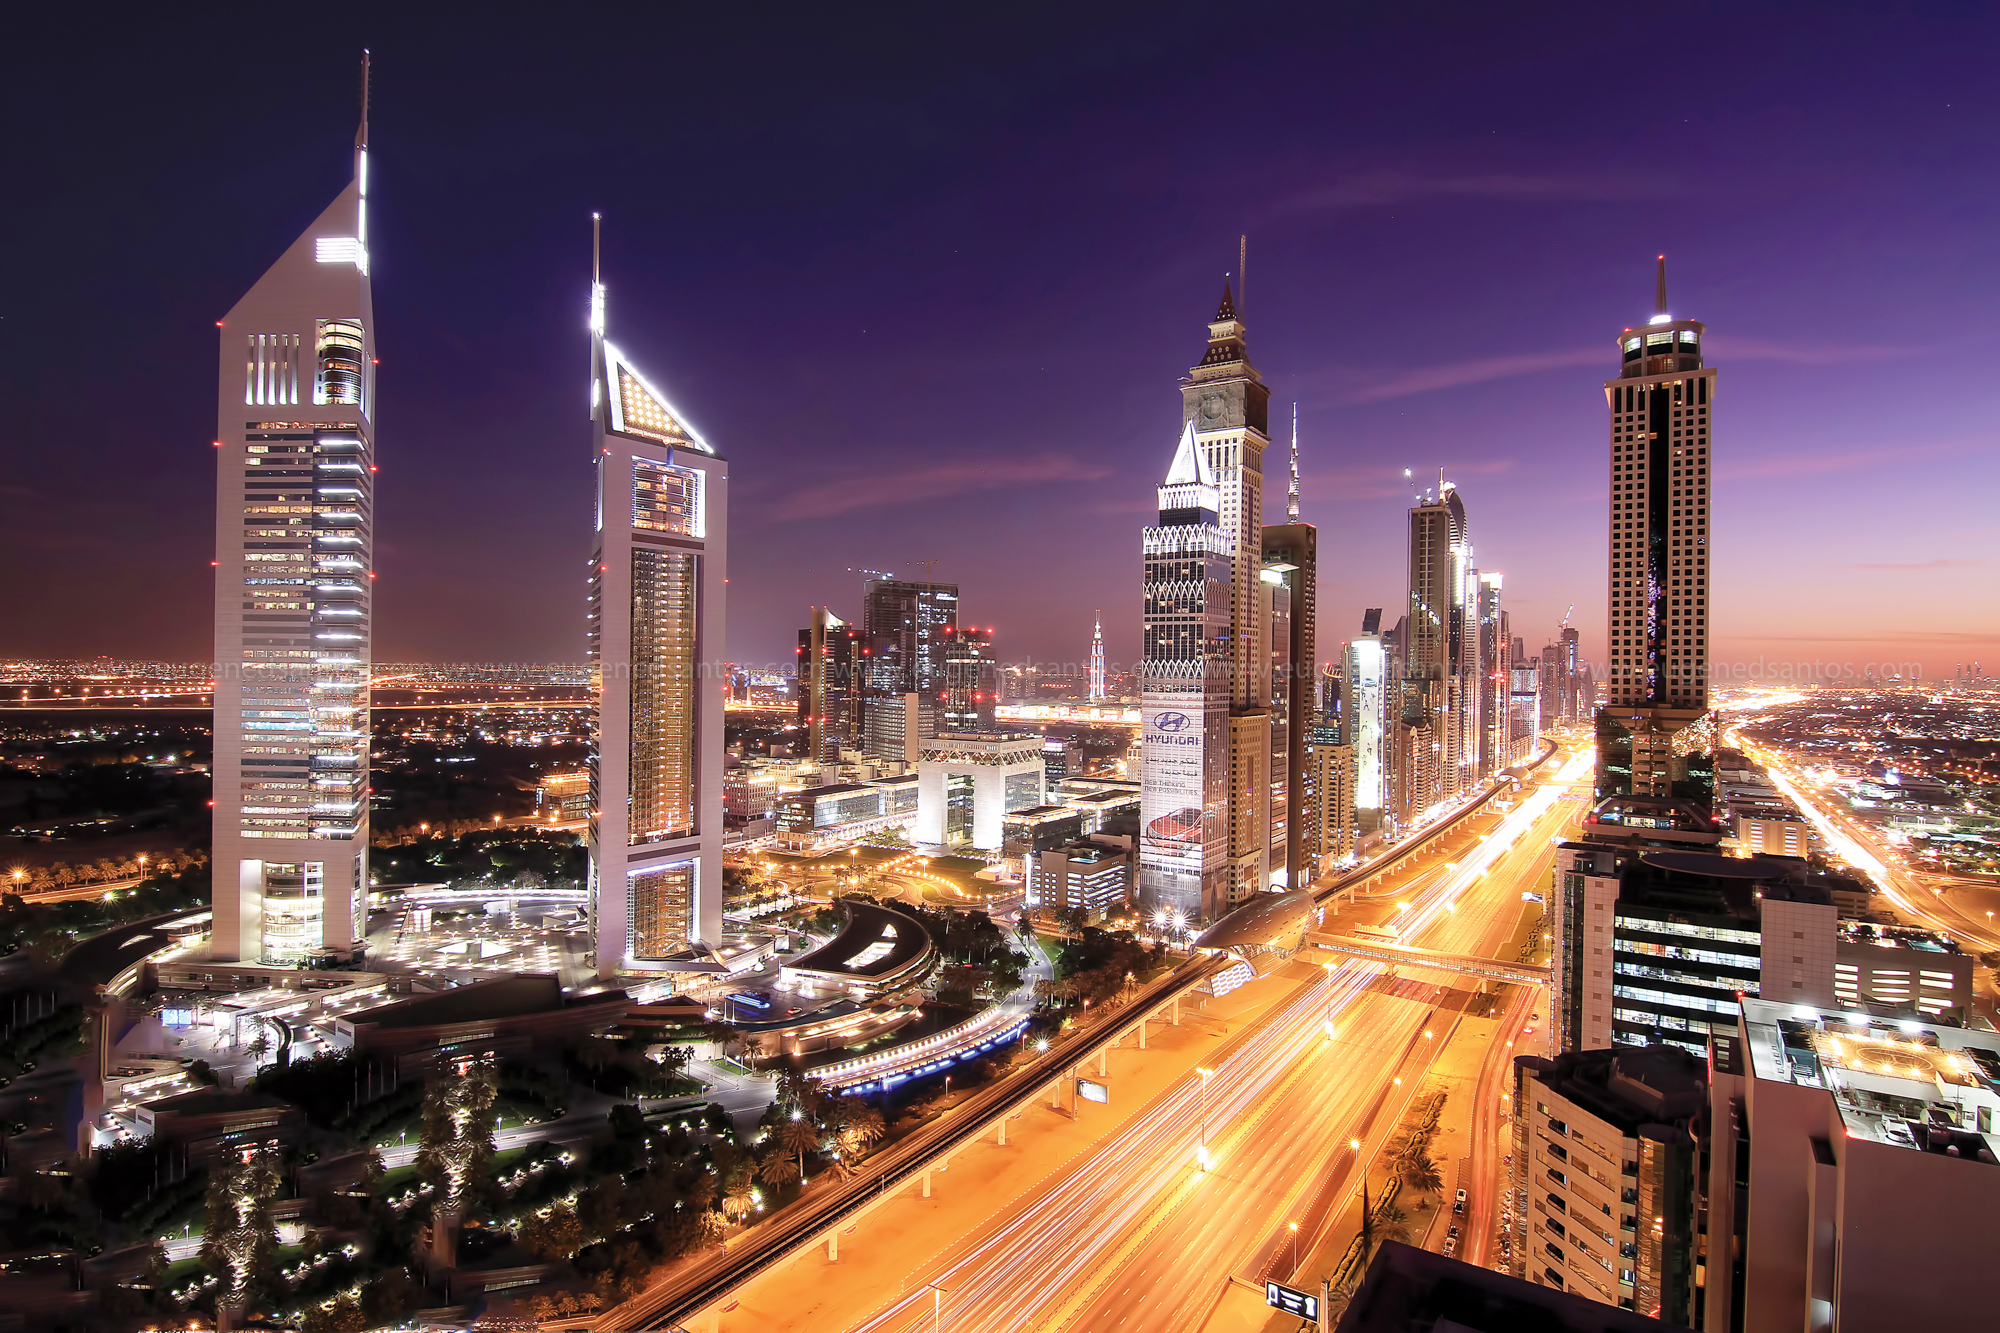 Shiekh Zayed Rd - Emirates Towers